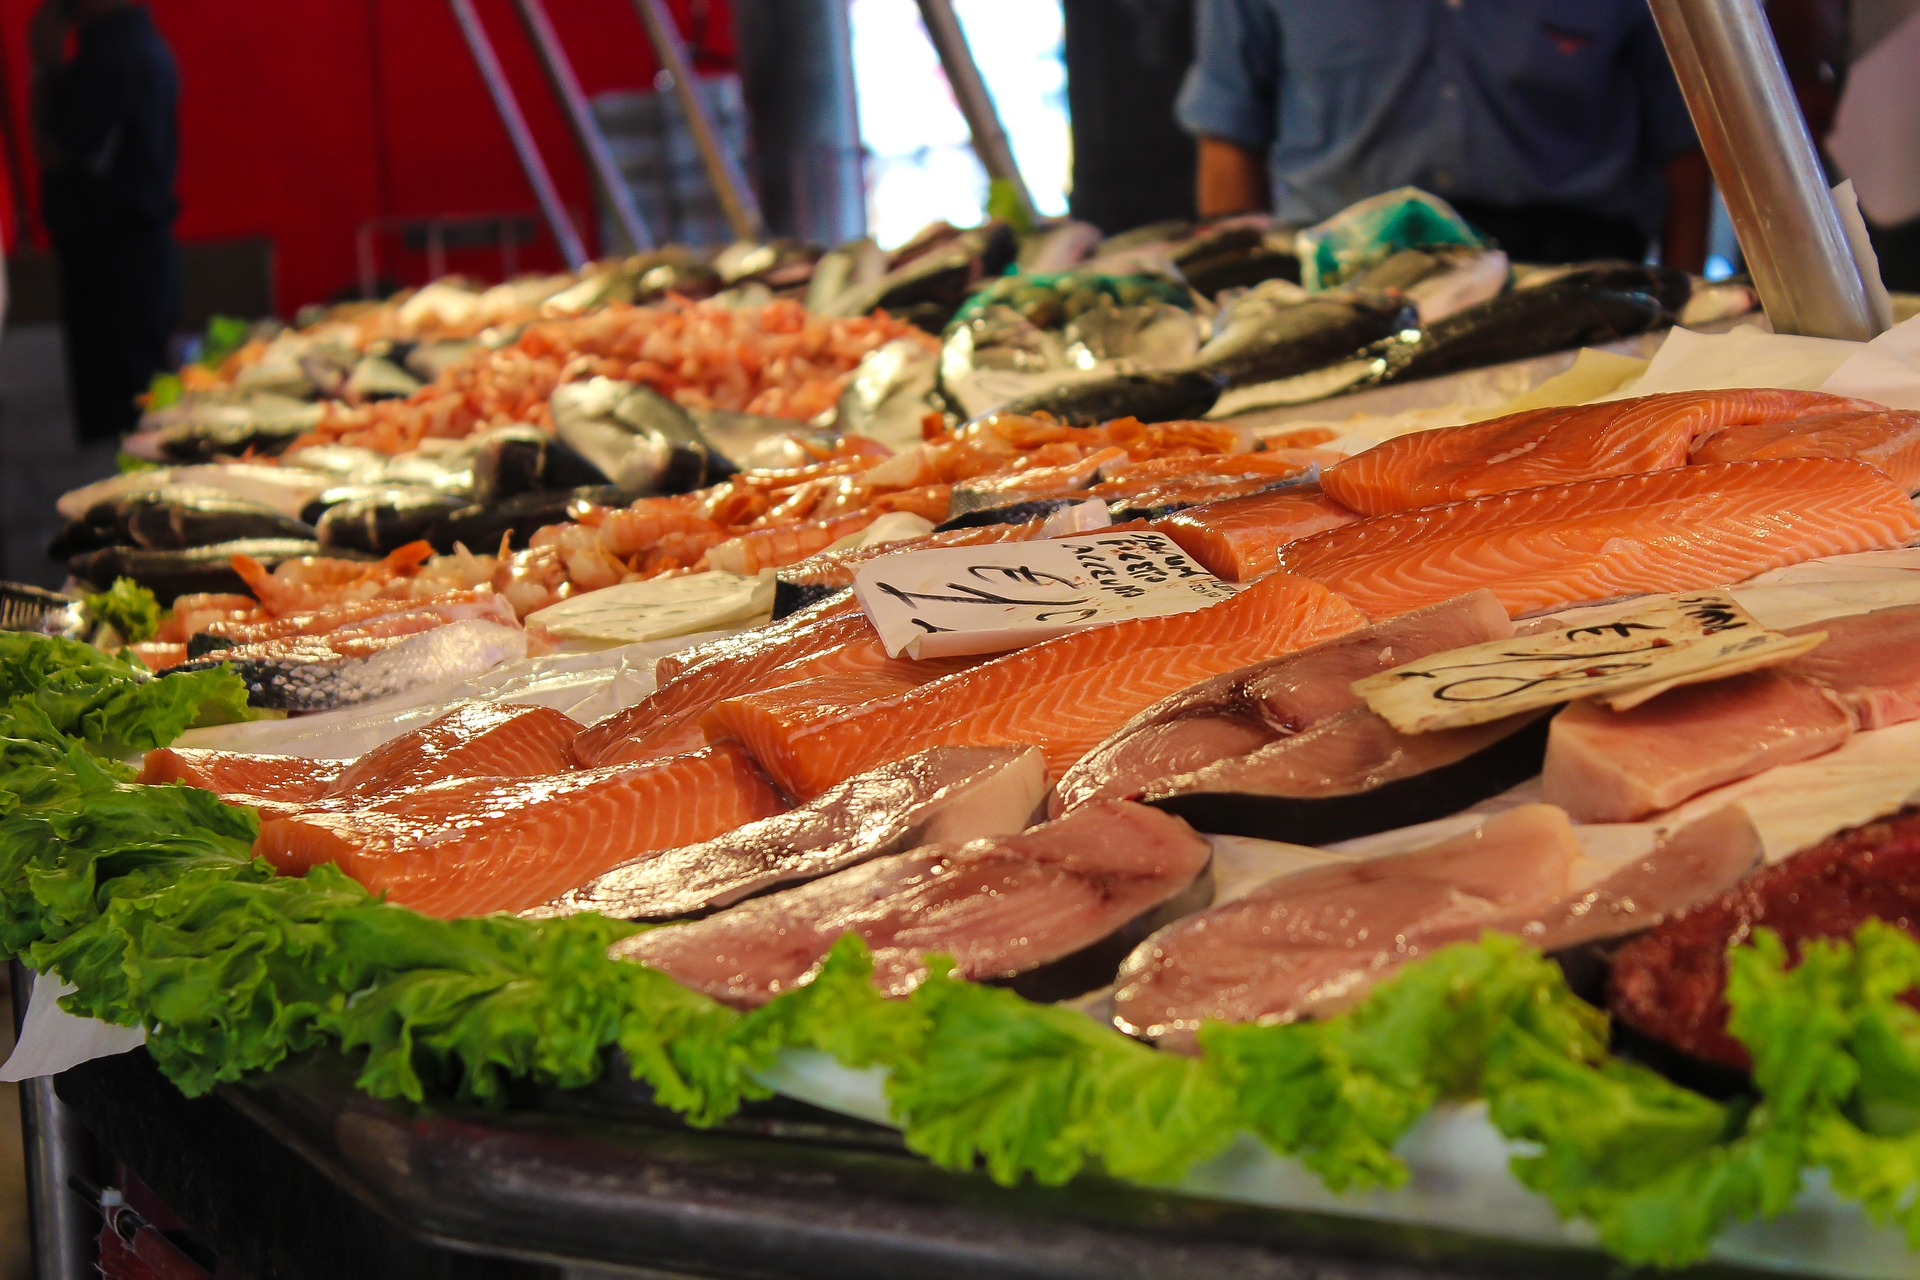 The centrepiece of Bury Market is a state of the art Fish and Meat Hall, where you will be entertained by the theatre of the stallholders shouting out their wares and announcing the 'deals of the day'.